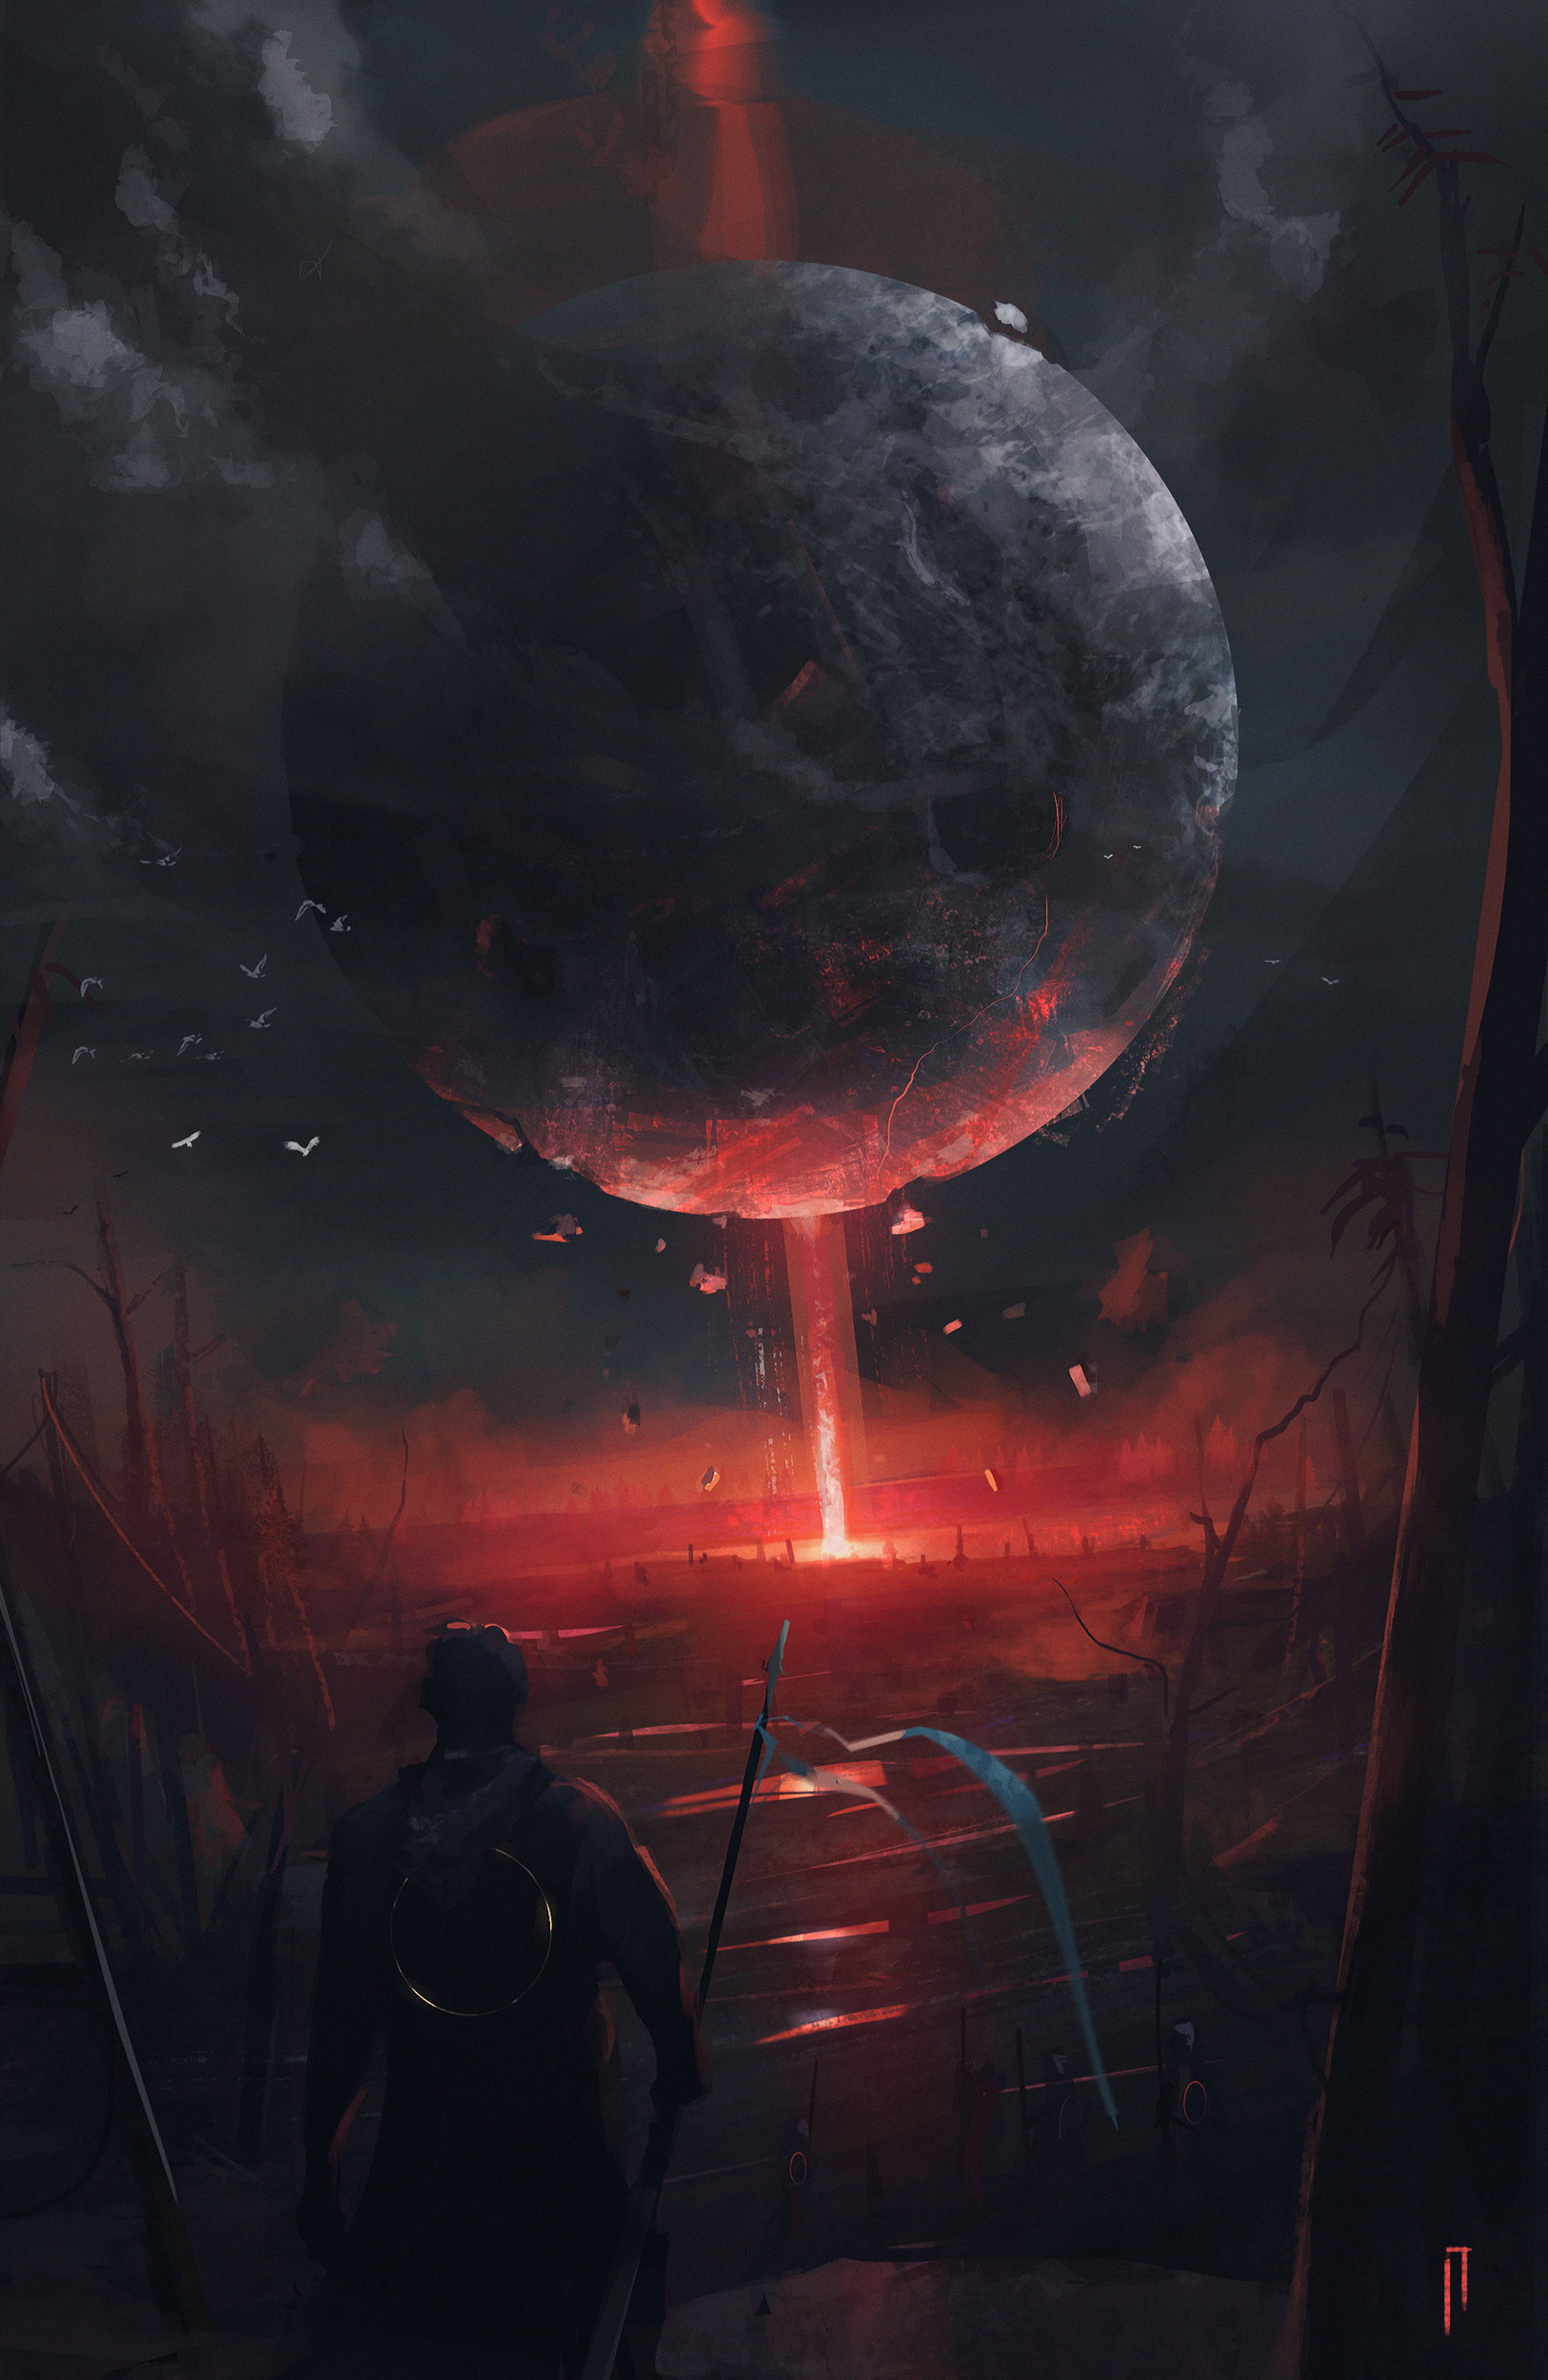 Ismail inceoglu material sphere